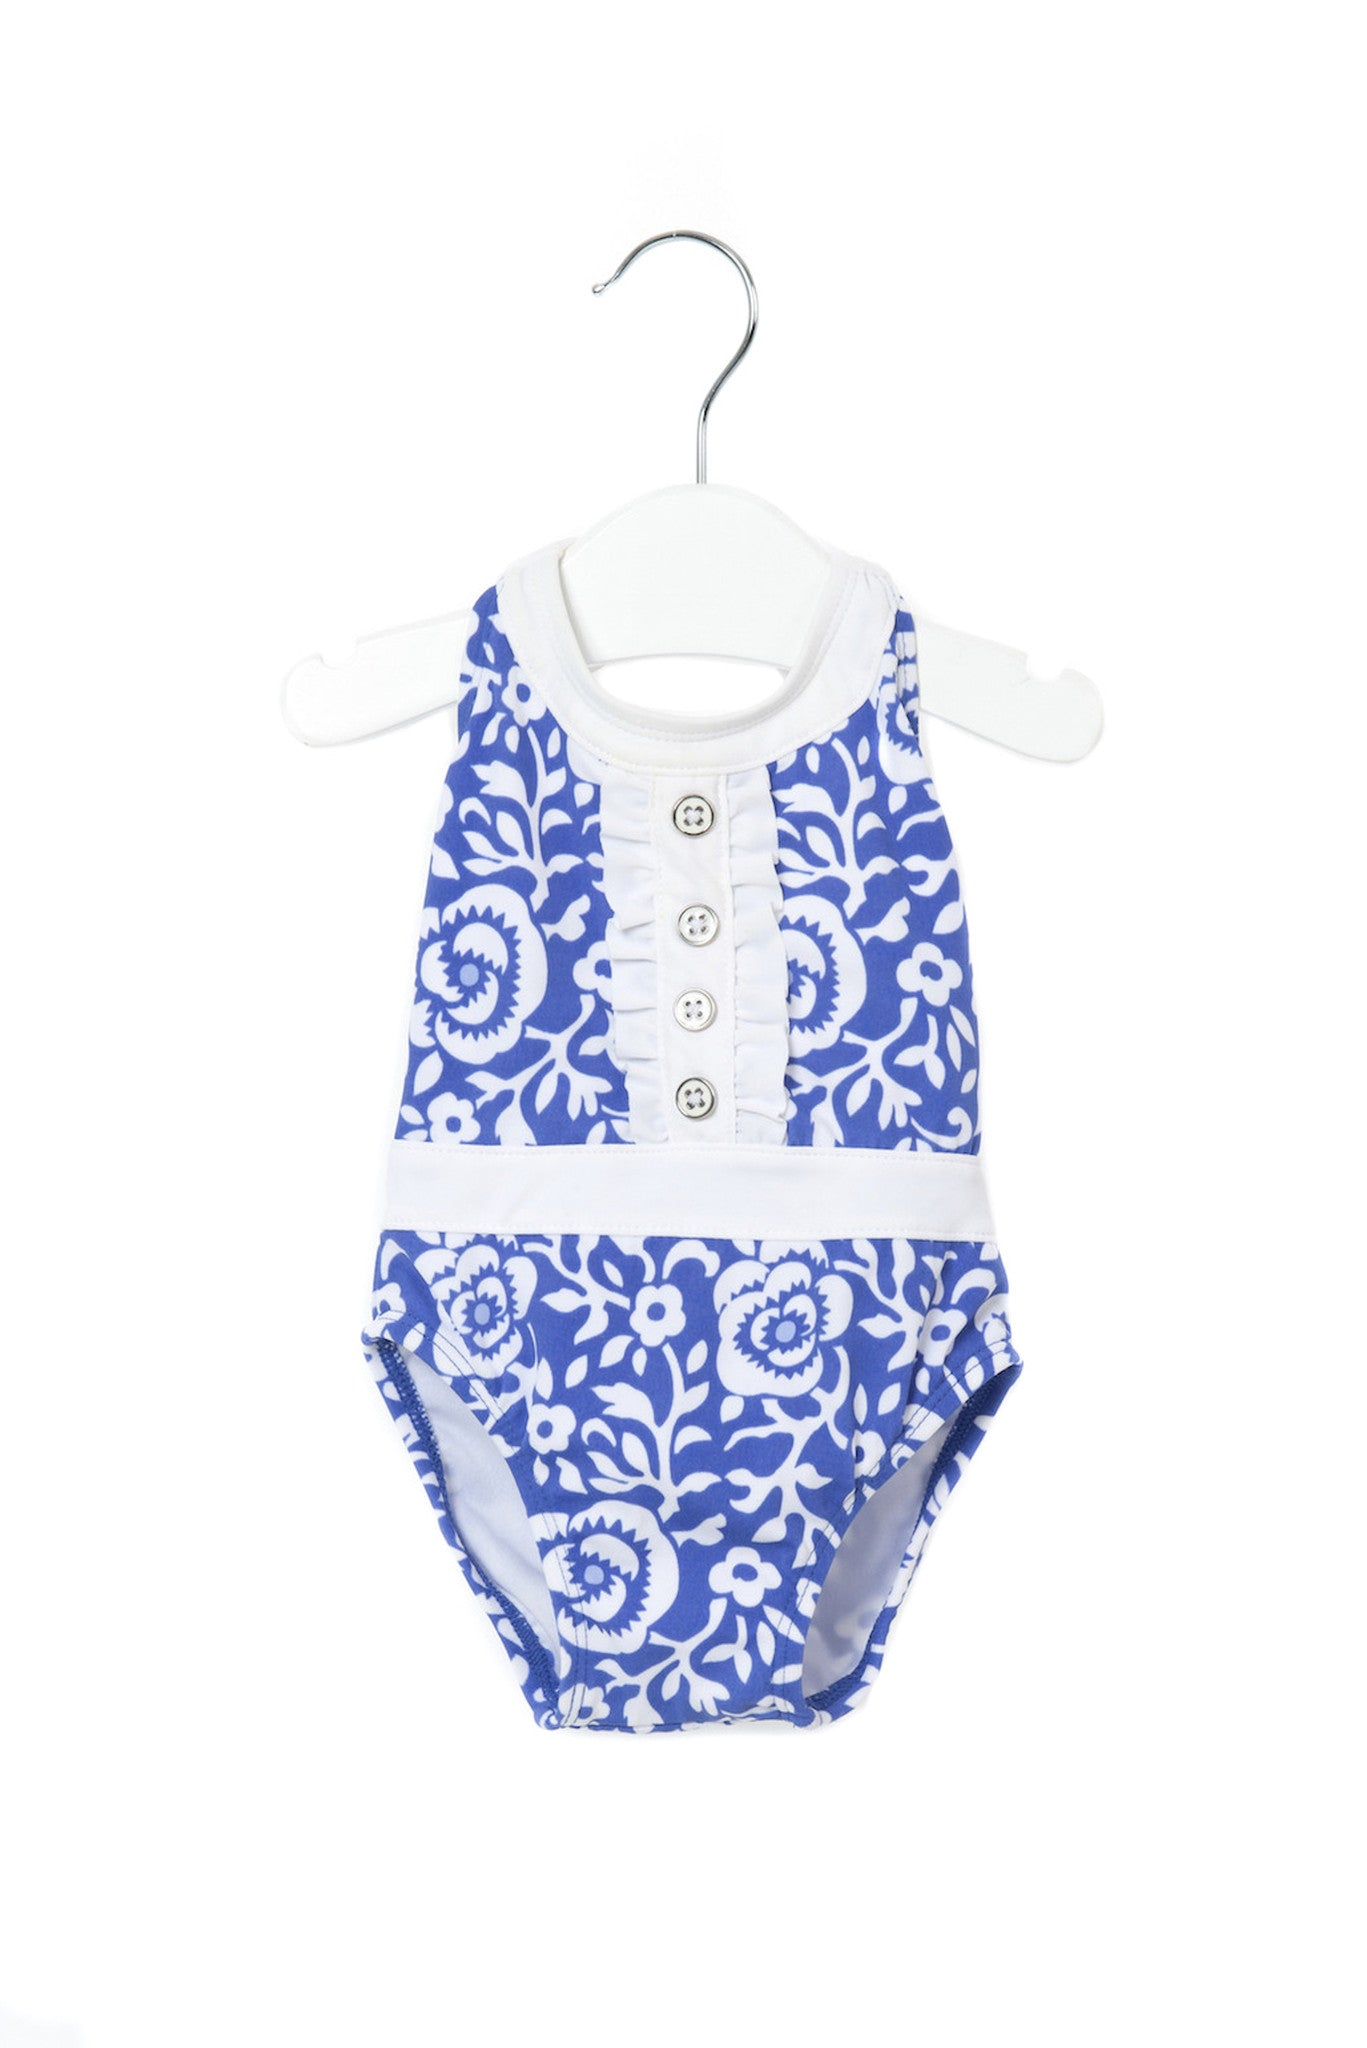 10001331 Janie & Jack Baby~Swimwear 3-6M at Retykle